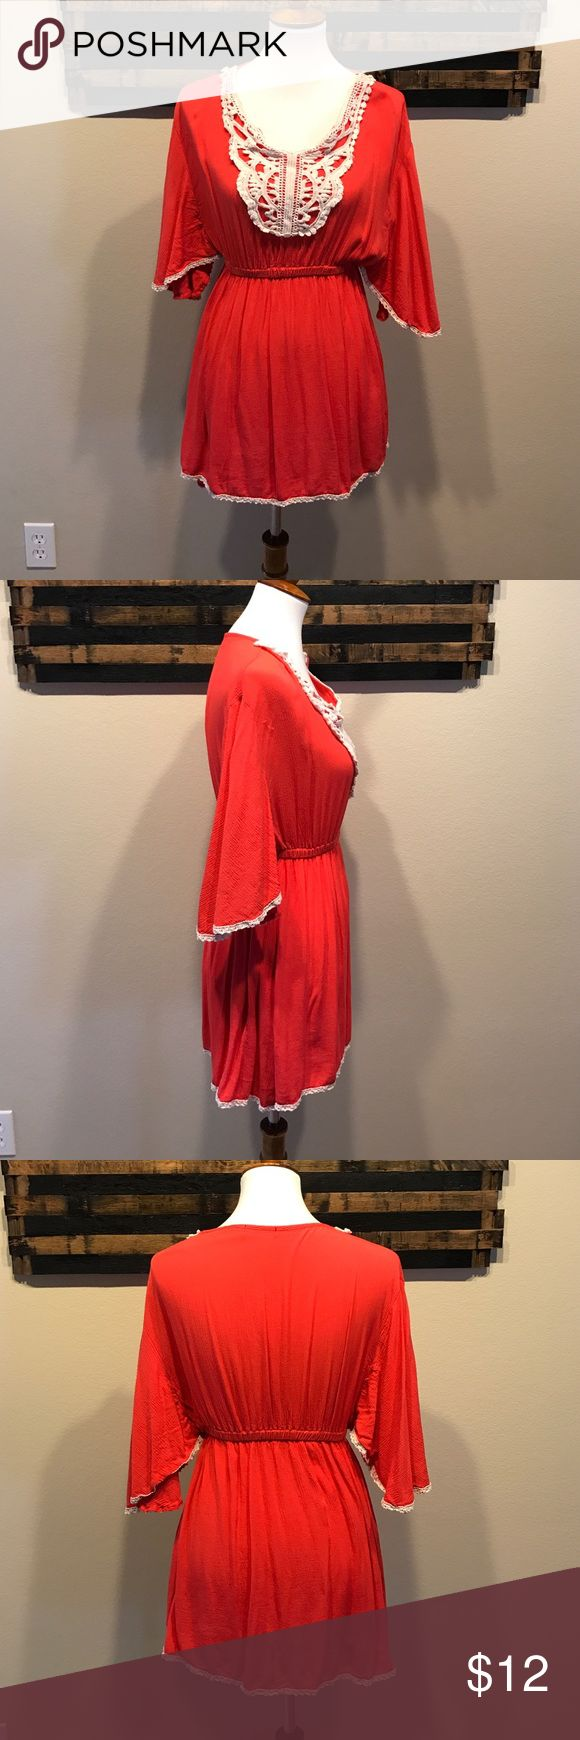 Coral swimsuit cover dress. Coral semi sheer swimsuit cover up. It's work like a dress with a waist band. It's got cream trim around the seams. It fits loose everywhere but the waist. Very breathable. Tag cut off for comfort. Swim Coverups